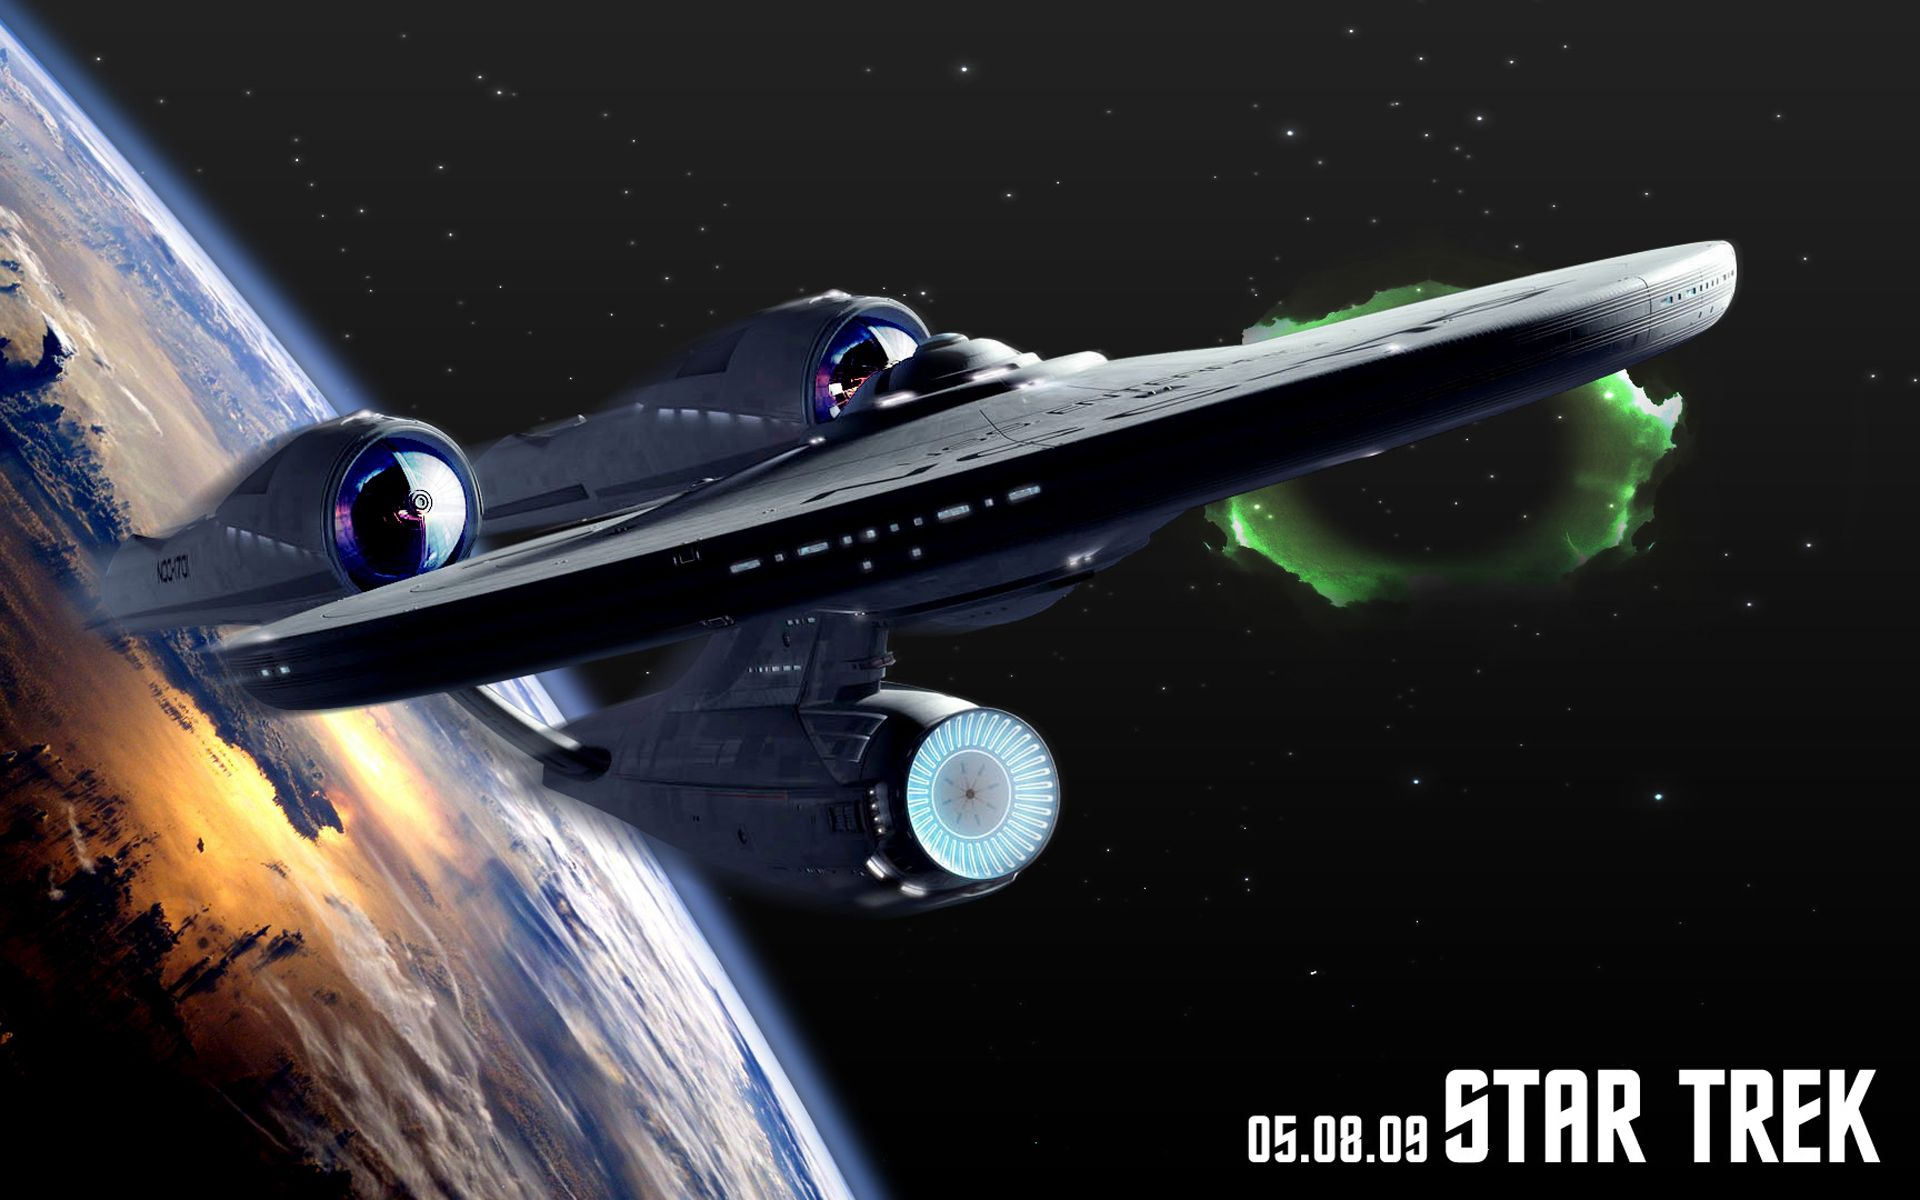 Uss Enterprise Poster Wallpaper 1920x1200